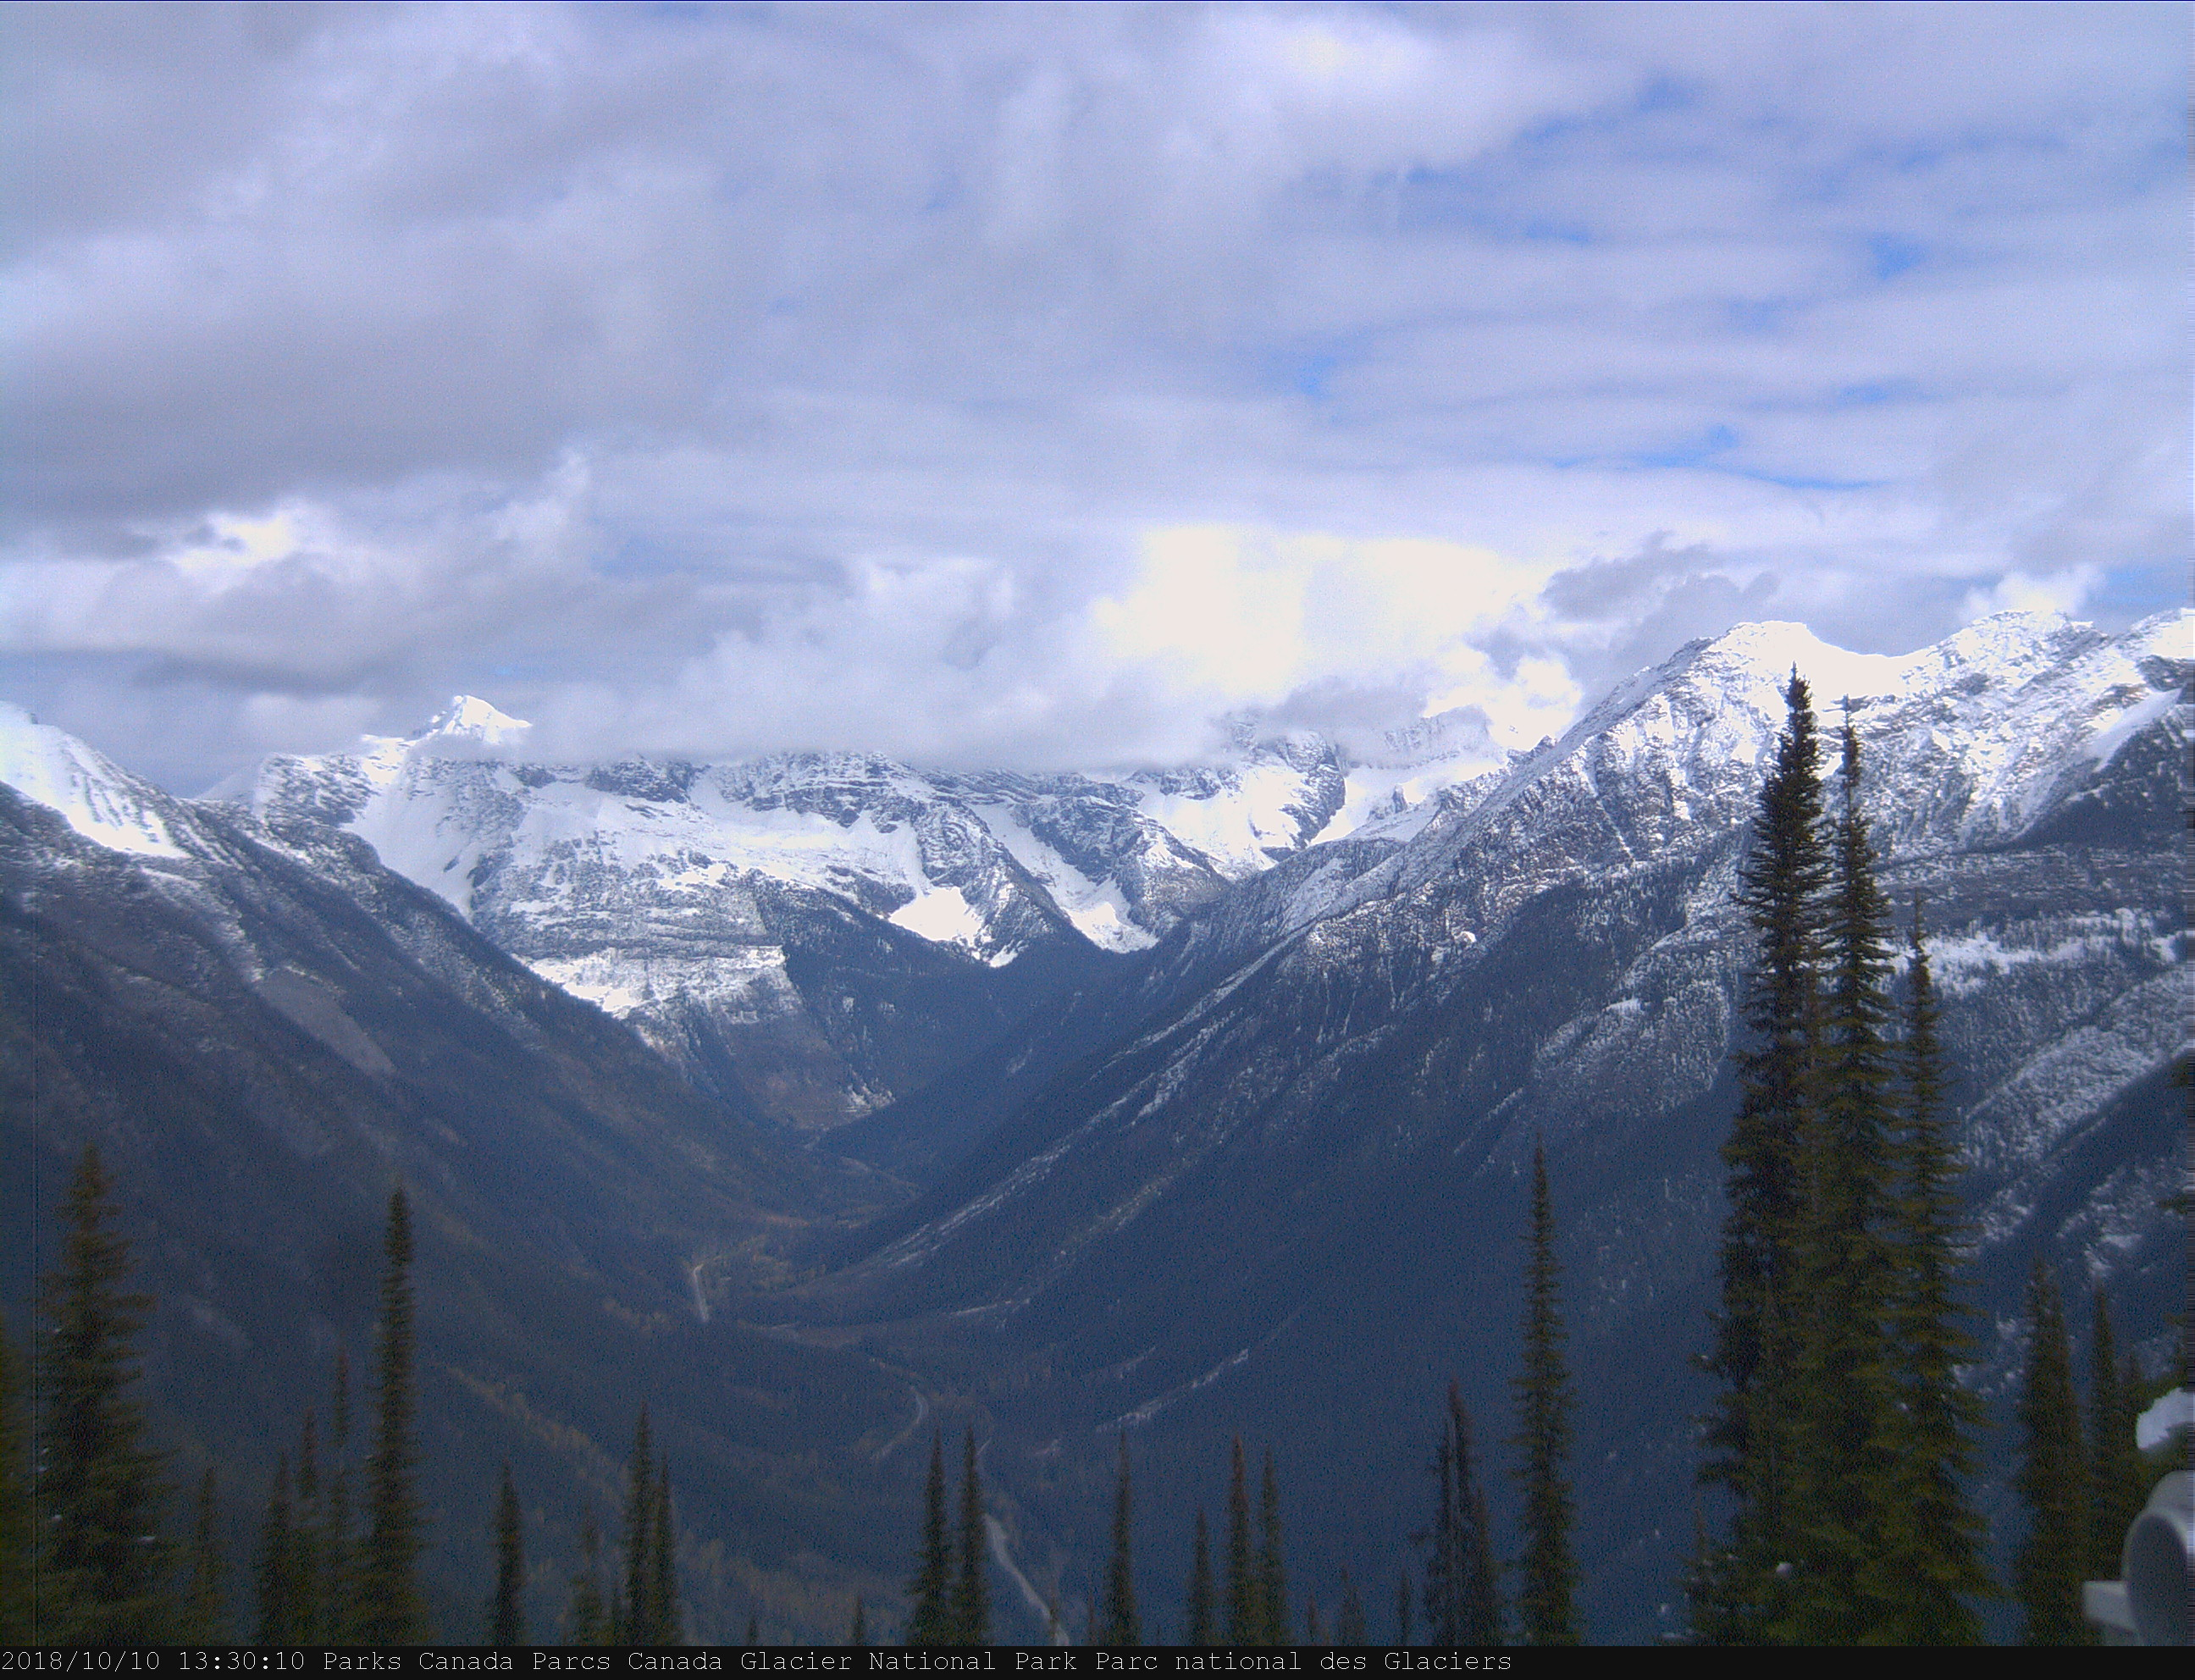 View of Sir Donald Range in Glacier National Park, Canada.  Features visible include: Mount Sir Donald, Uto Peak, Eagle Peak, Avalanche Mountain, Terminal Peaks and the Illecillewaet valley.